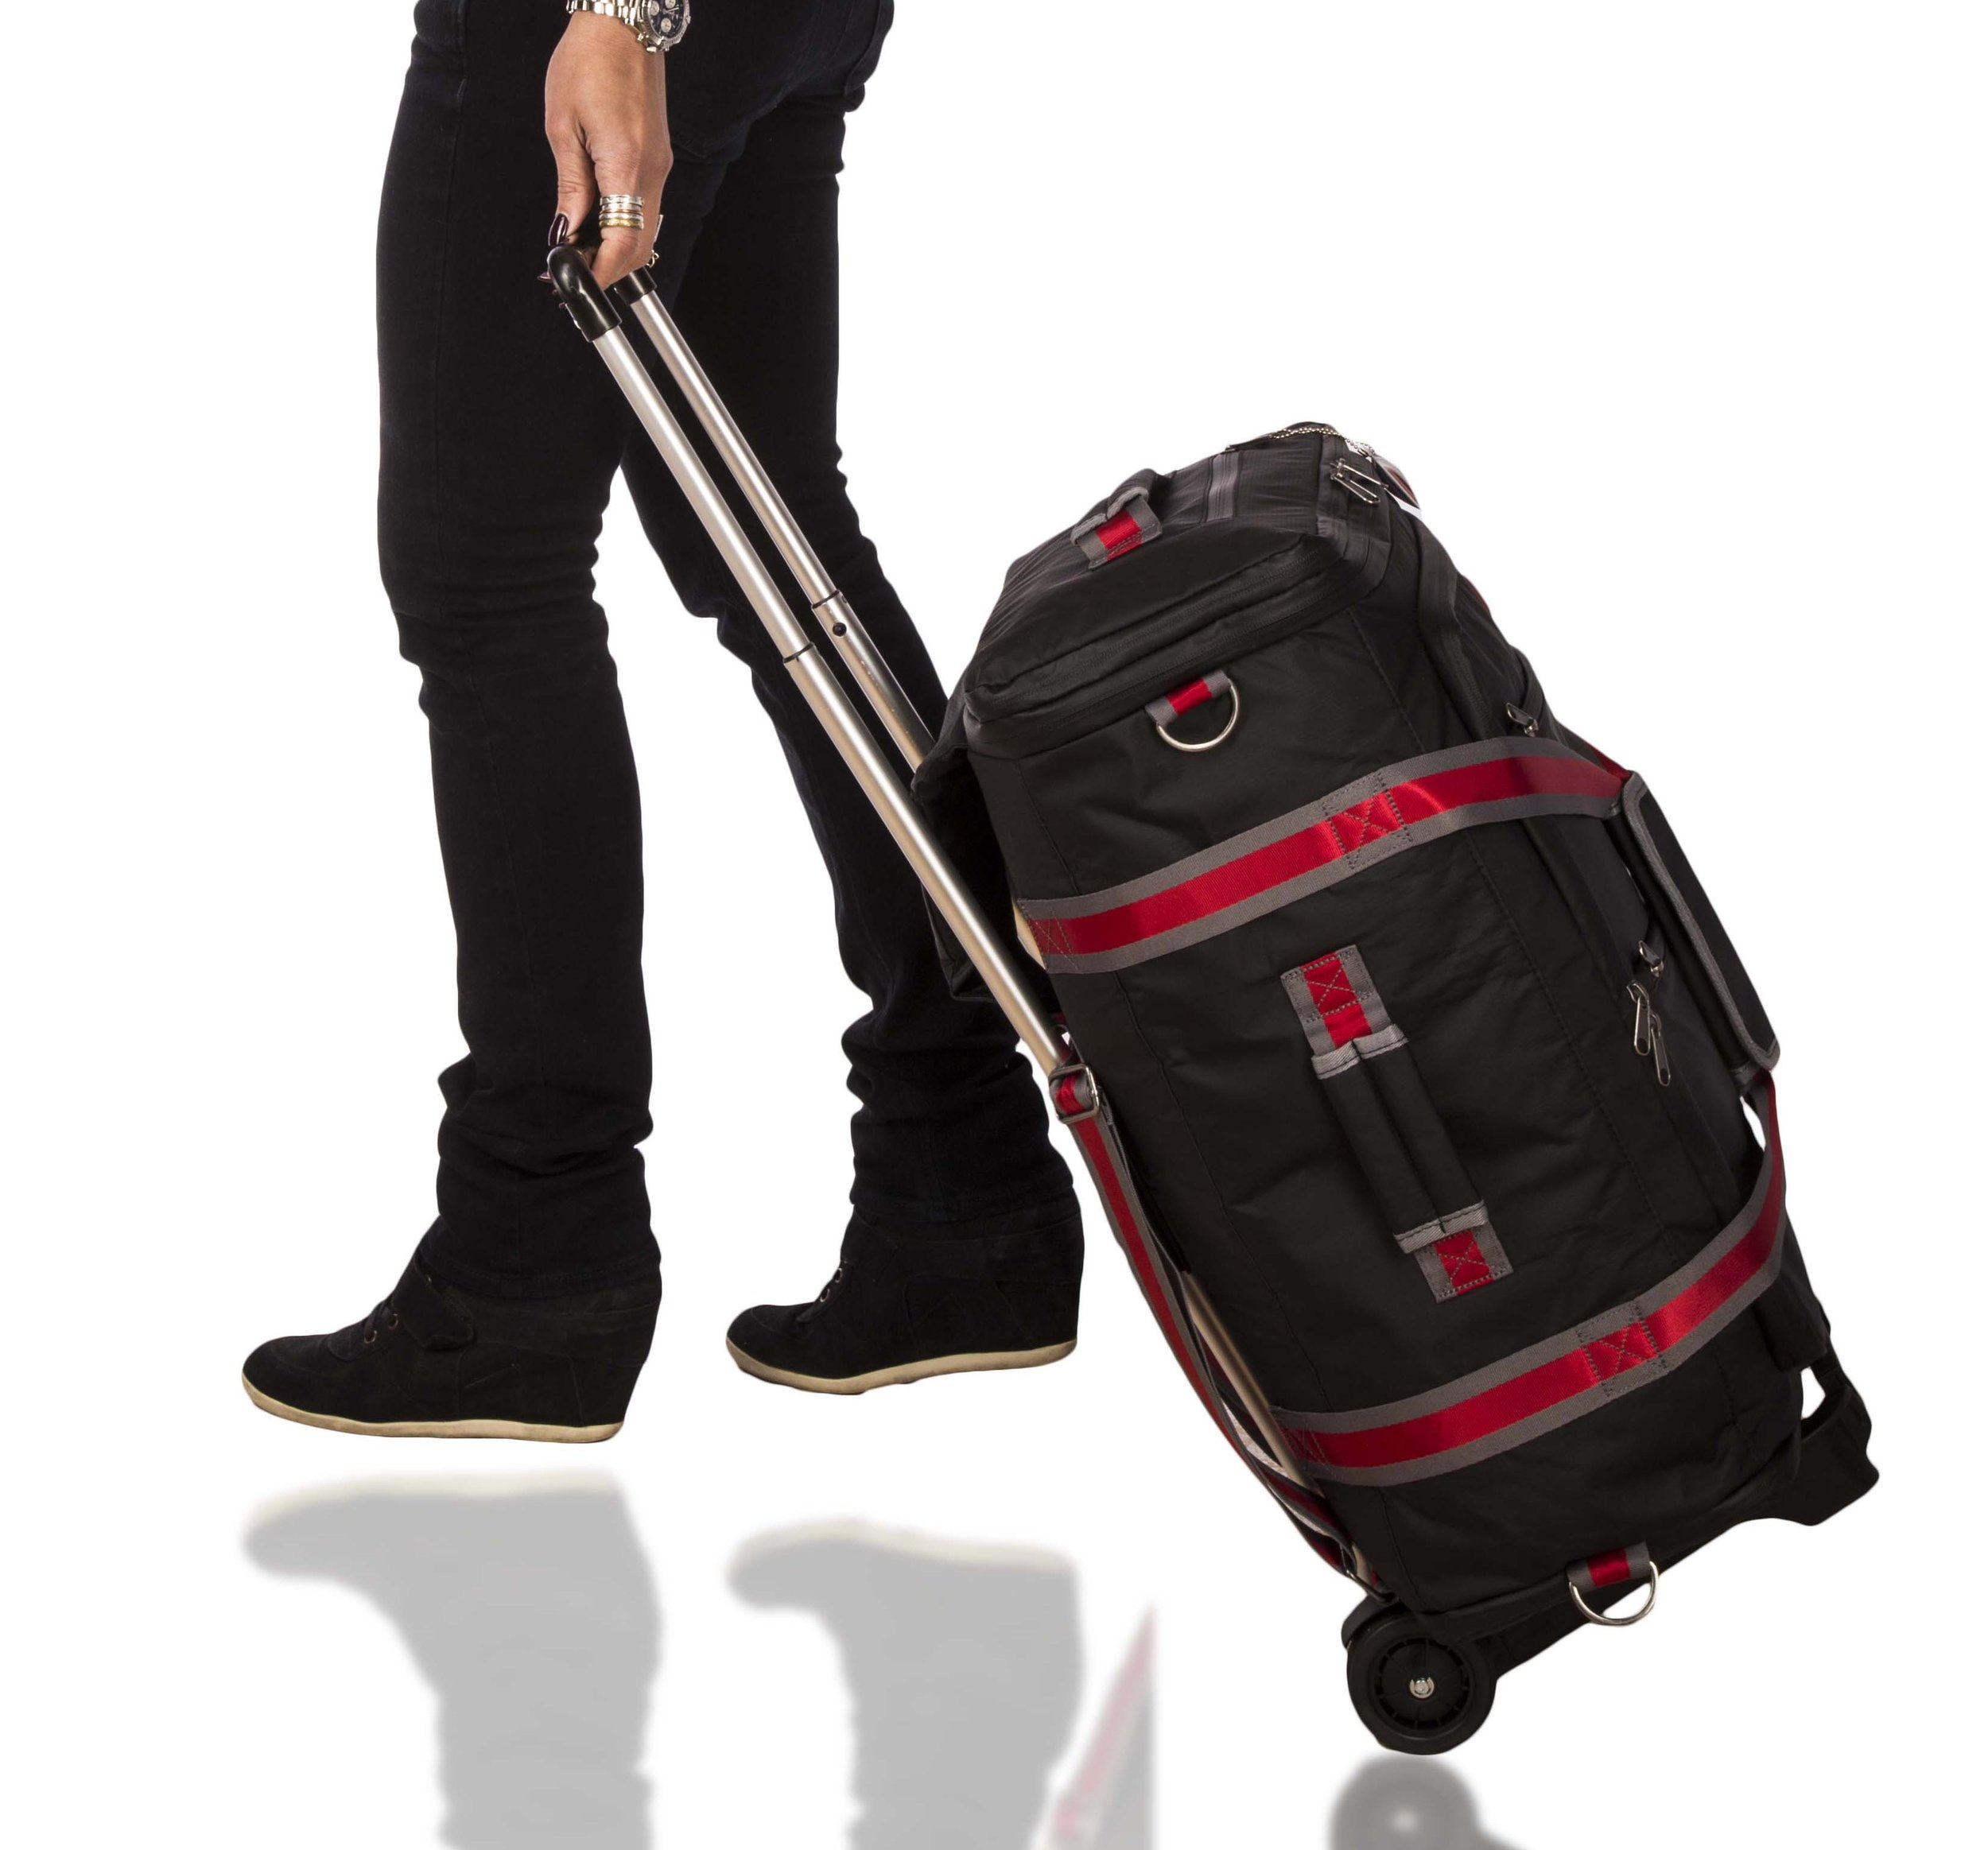 Our trollite frame is the lightest travel trolley on the market right now. Less than 900g, no more! For £13, why not lighten the load? https://www.leanpac.co.uk/trollite